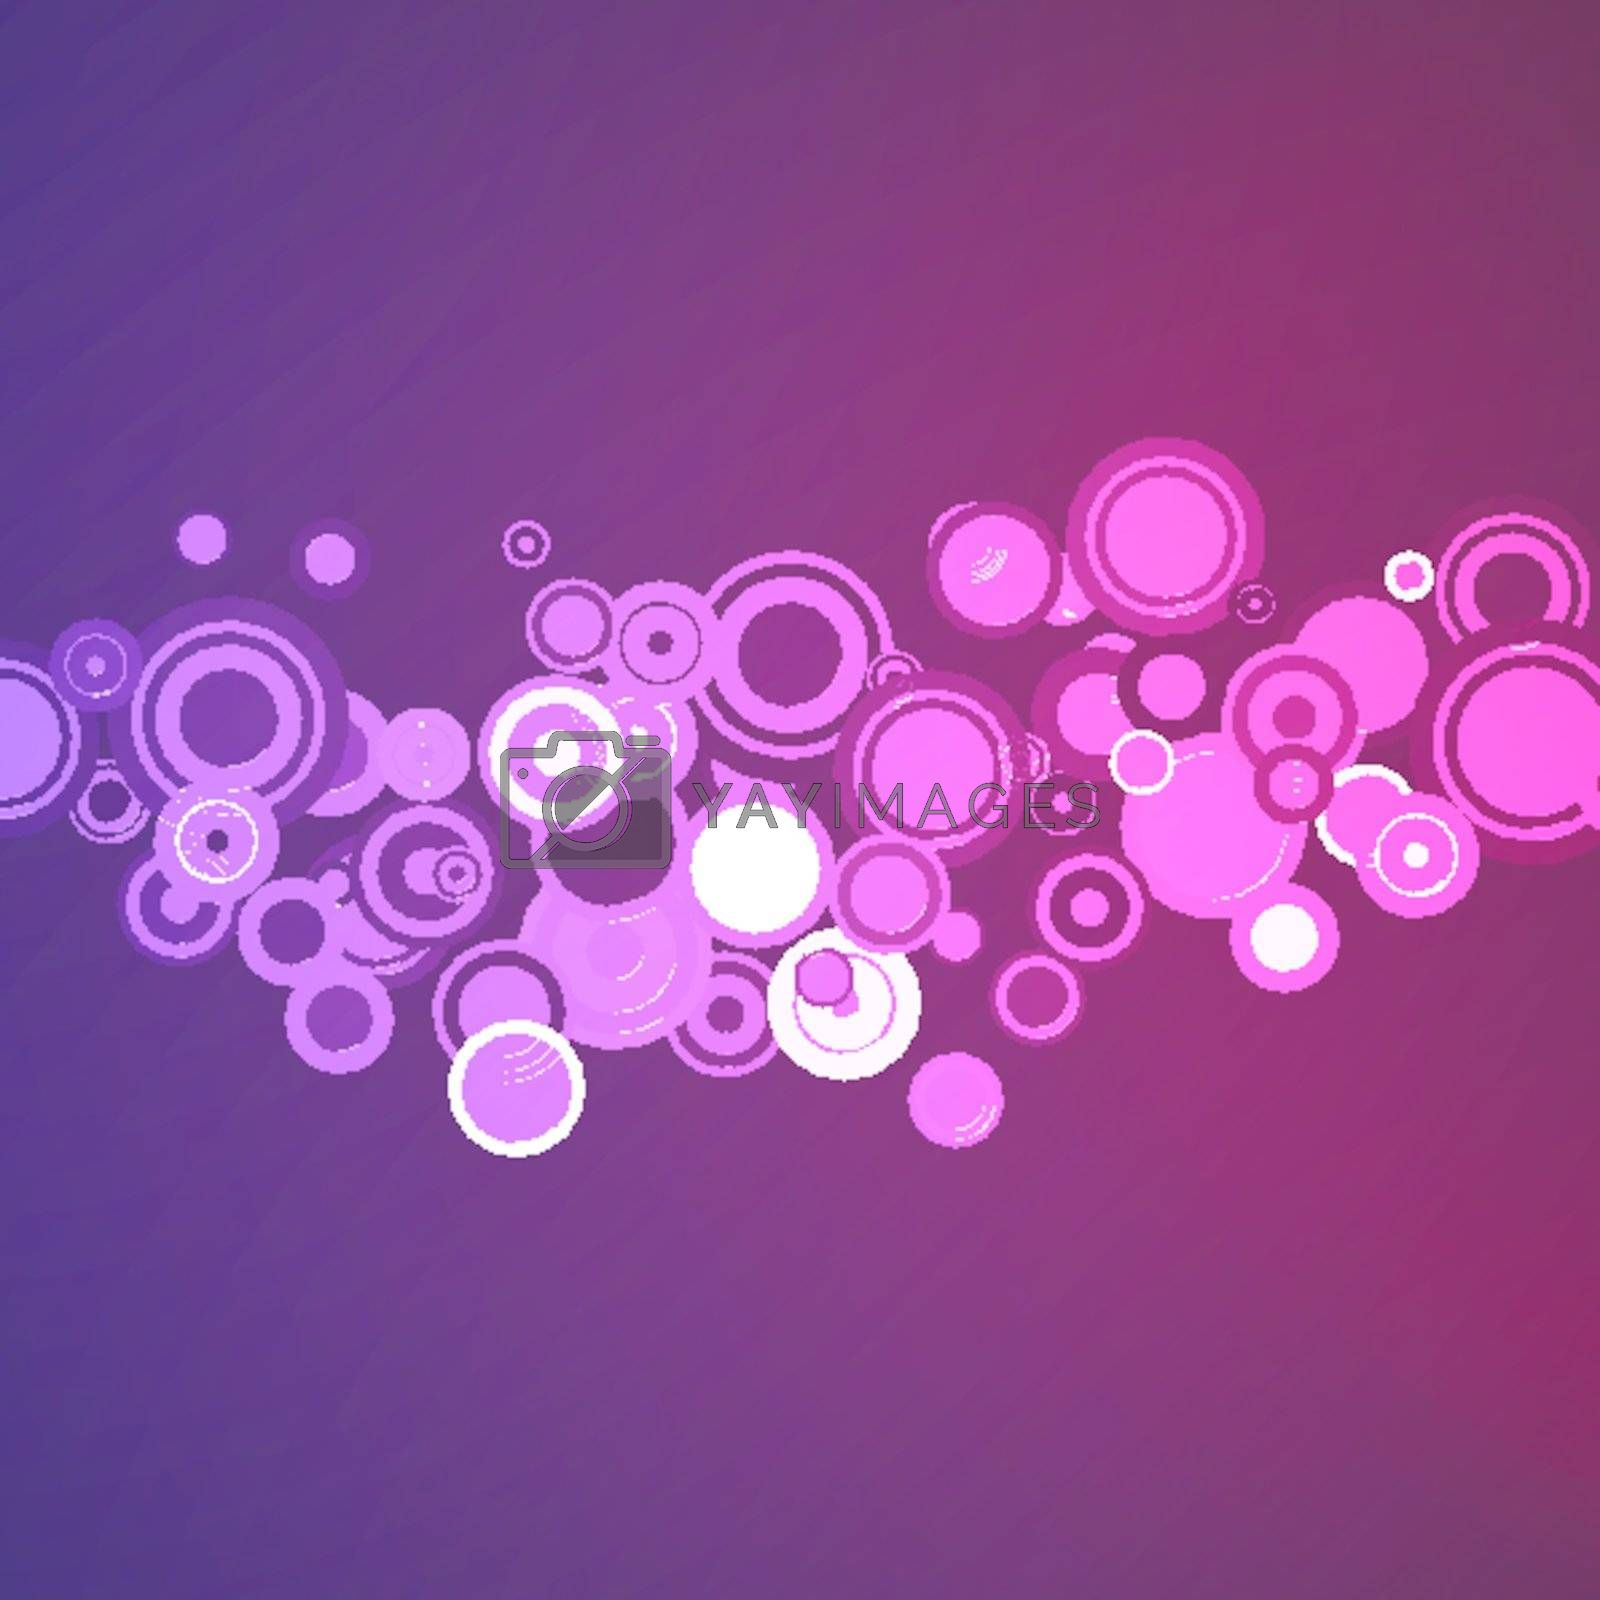 vector abstract background with circles EPS 10 vector file included